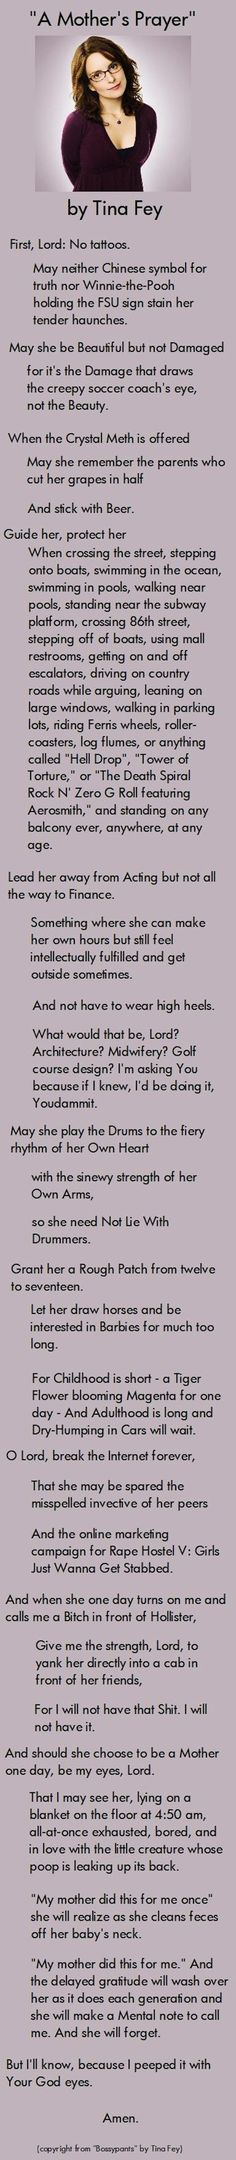 Oh My gosh - this made me laugh, it made me cry, it made me smile as well as sigh....  A Mother's Prayer by Tina Fey